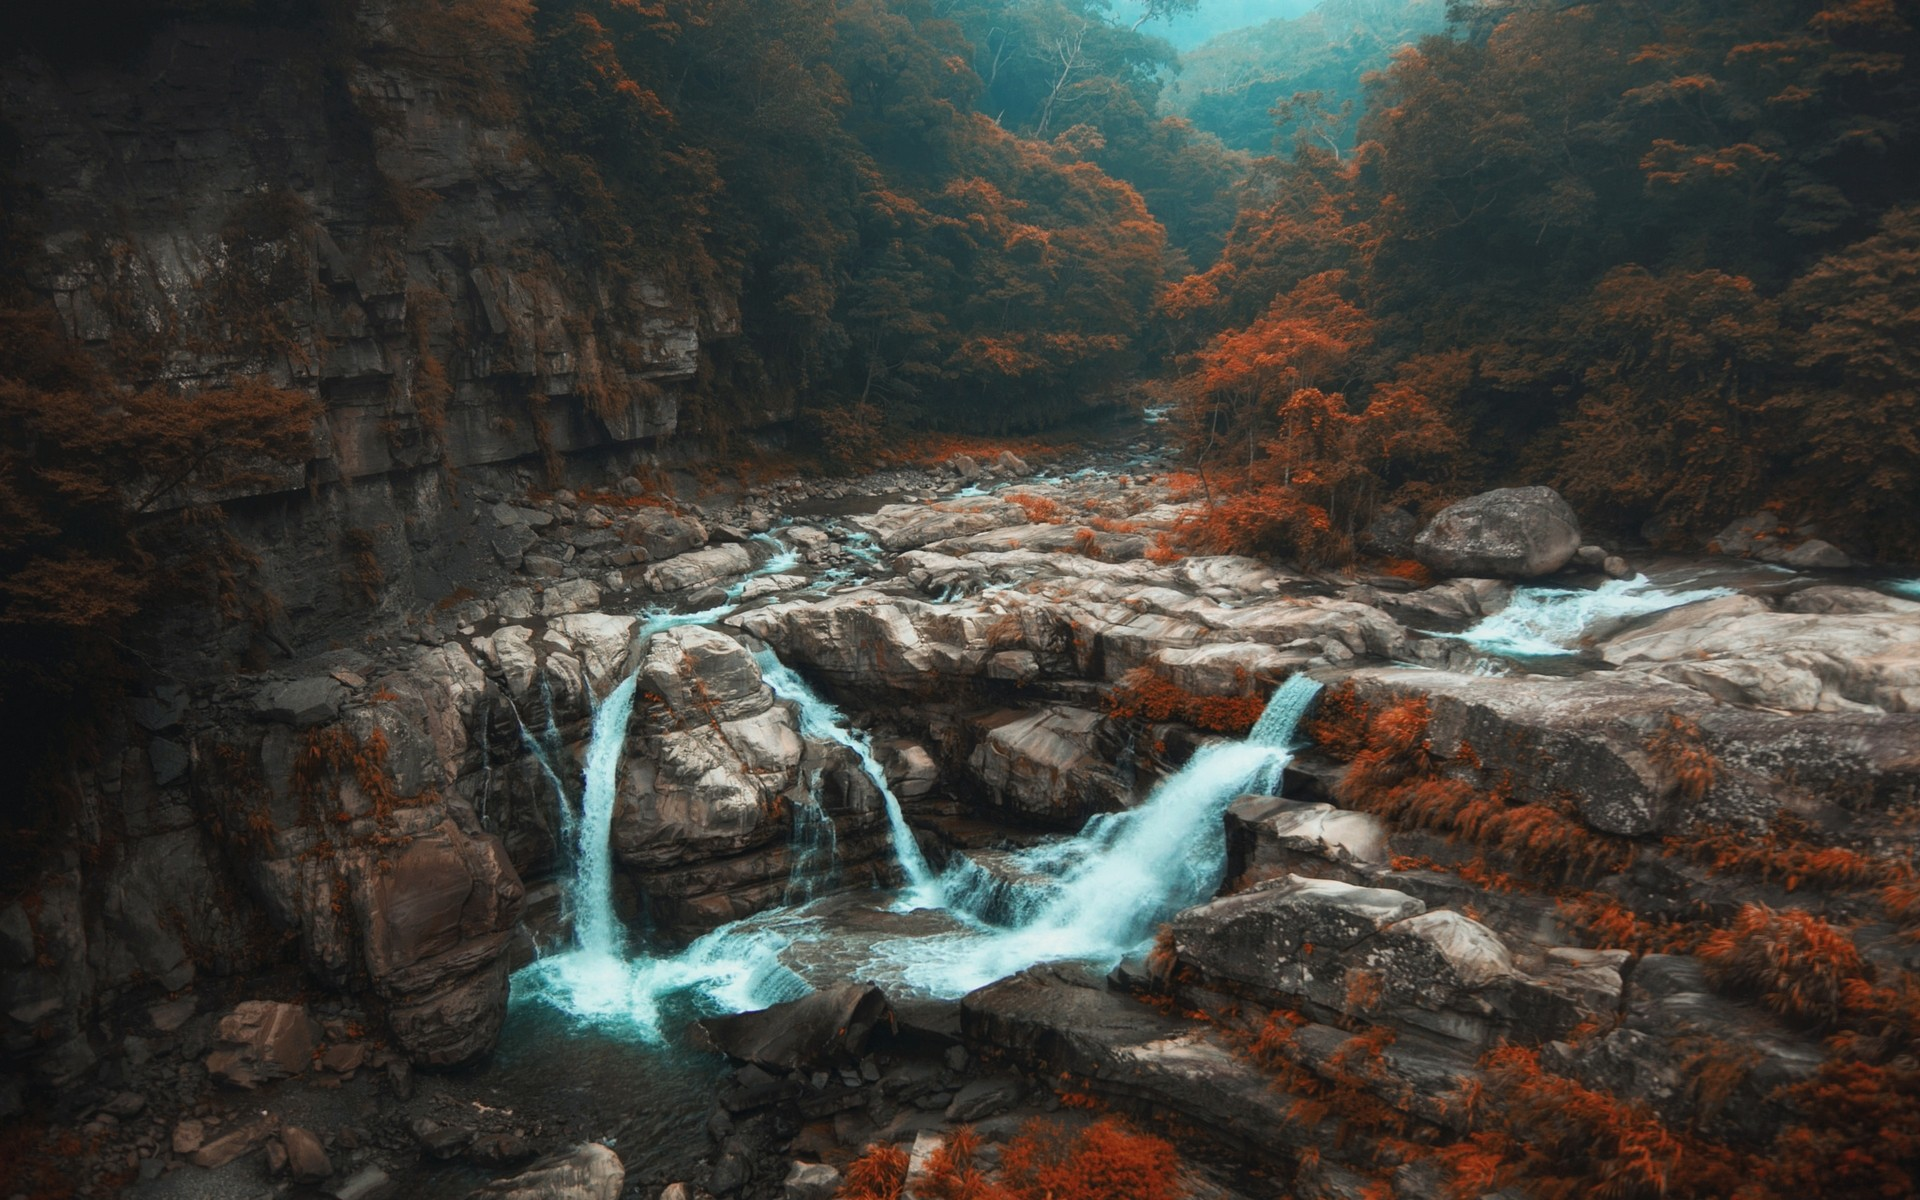 General 1920x1200 nature landscape fall forest waterfall trees river mist shrubs Taiwan